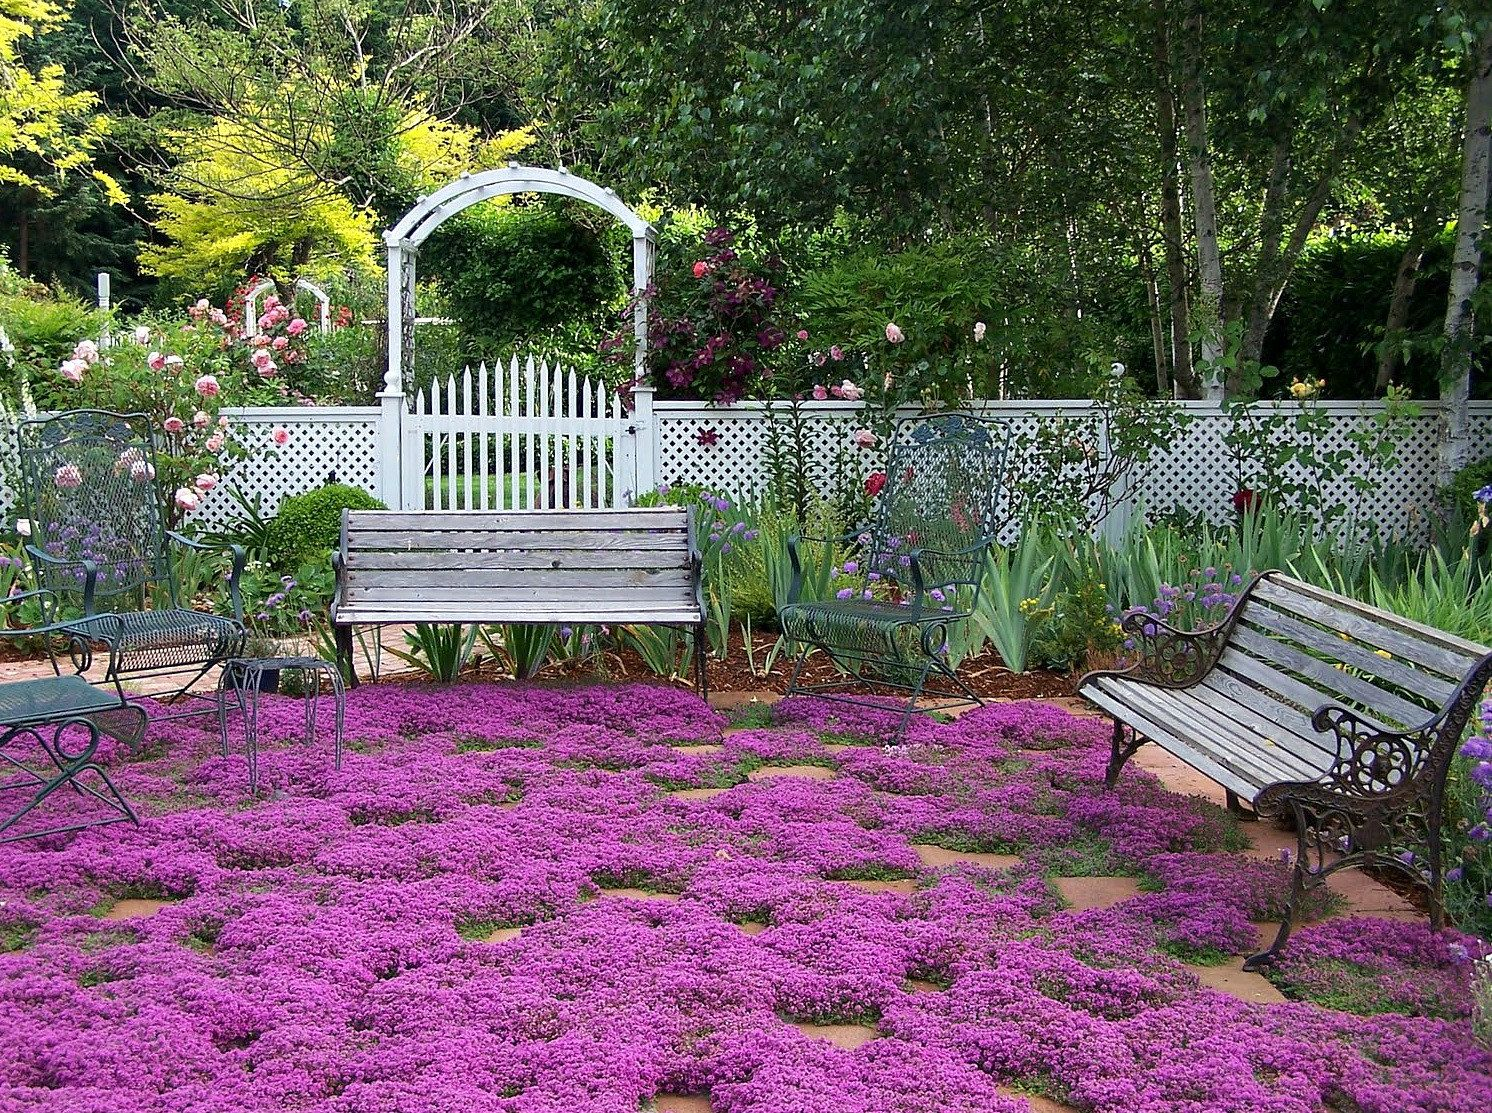 How to plant ground cover for shady areas - Creeping Thyme Ground Cover 1000 Seeds Fragrant Herb Pink Blooms Perennial Zones 4 To 9 Sun Or Light Shade Deerproof Thymus Serpyllum